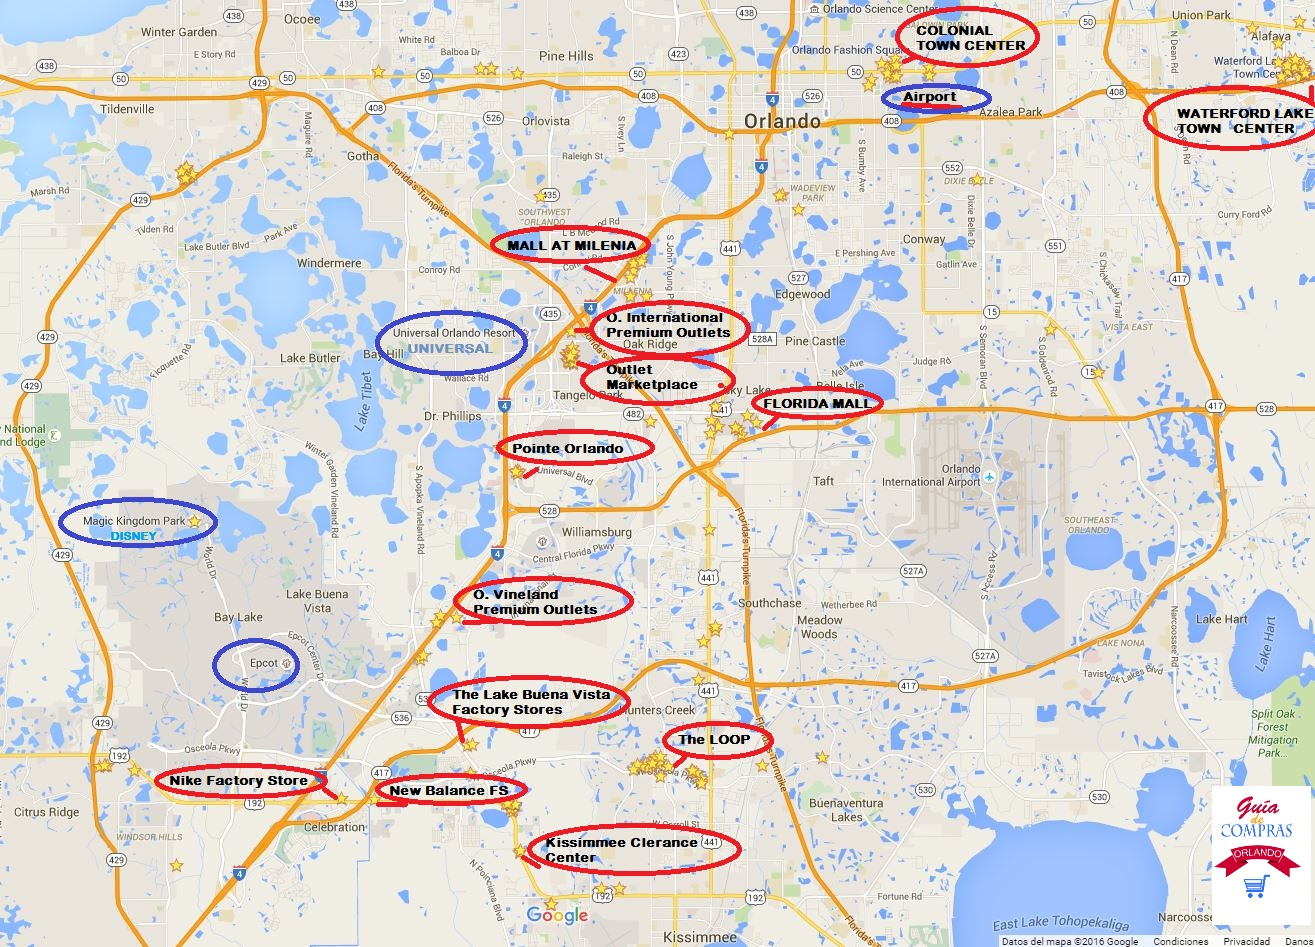 map of orlando airport with Search on Jimmy Buffetts additionally White House Trump Rybolovlev Russia Conspiracy 2017 3 besides Jfk e moreover Amsterdam additionally Details.